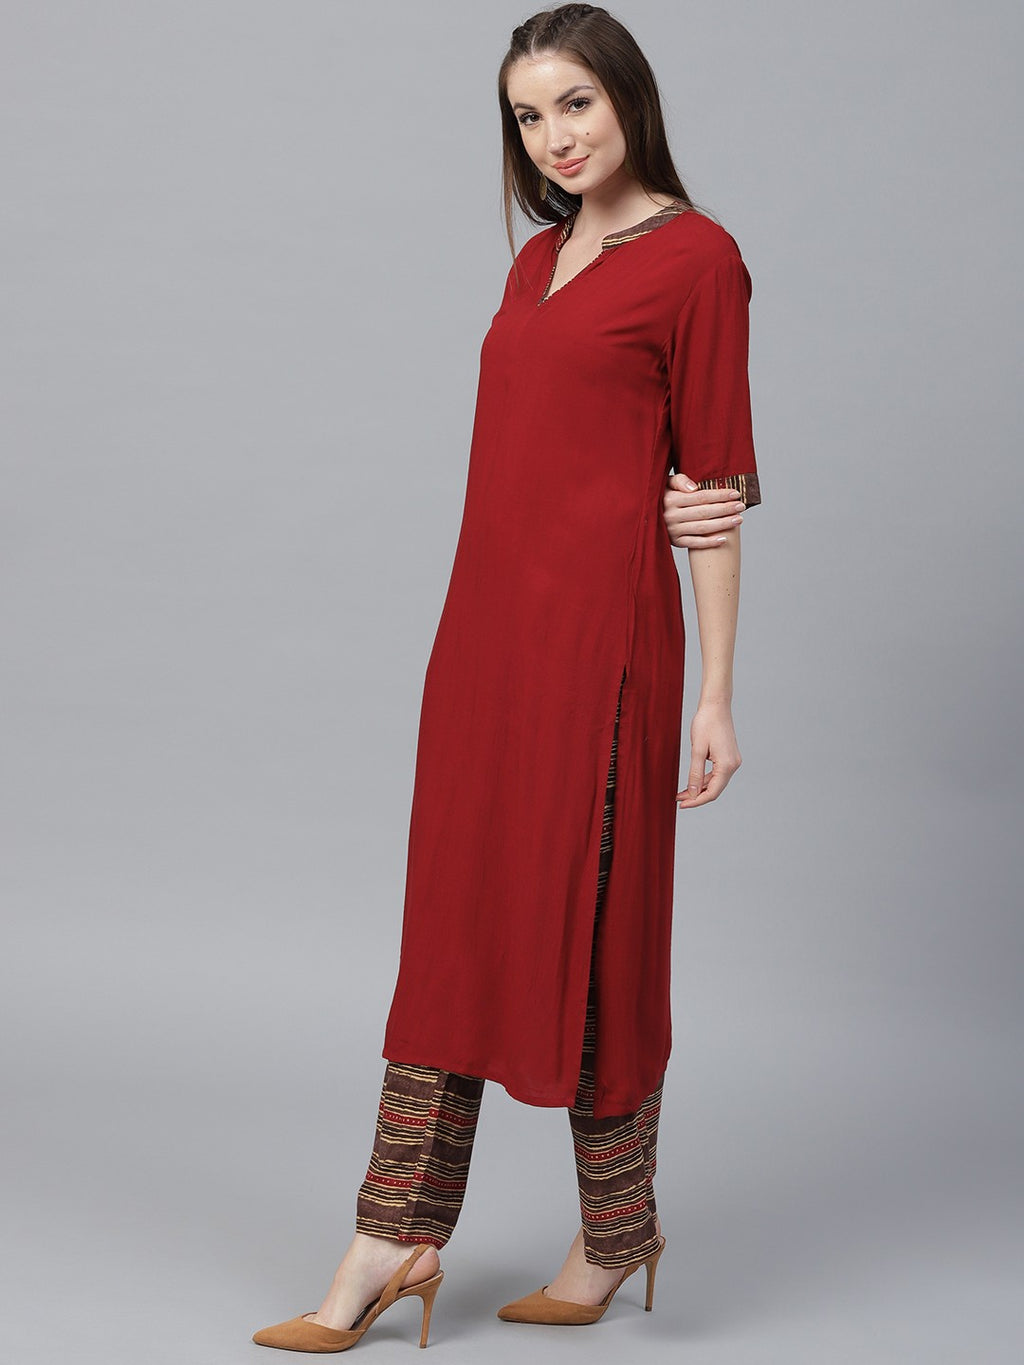 Burgundy Solid A-Line Kurta With Printed Palazzo Set (Fully Stitched) | Znx4ever.com